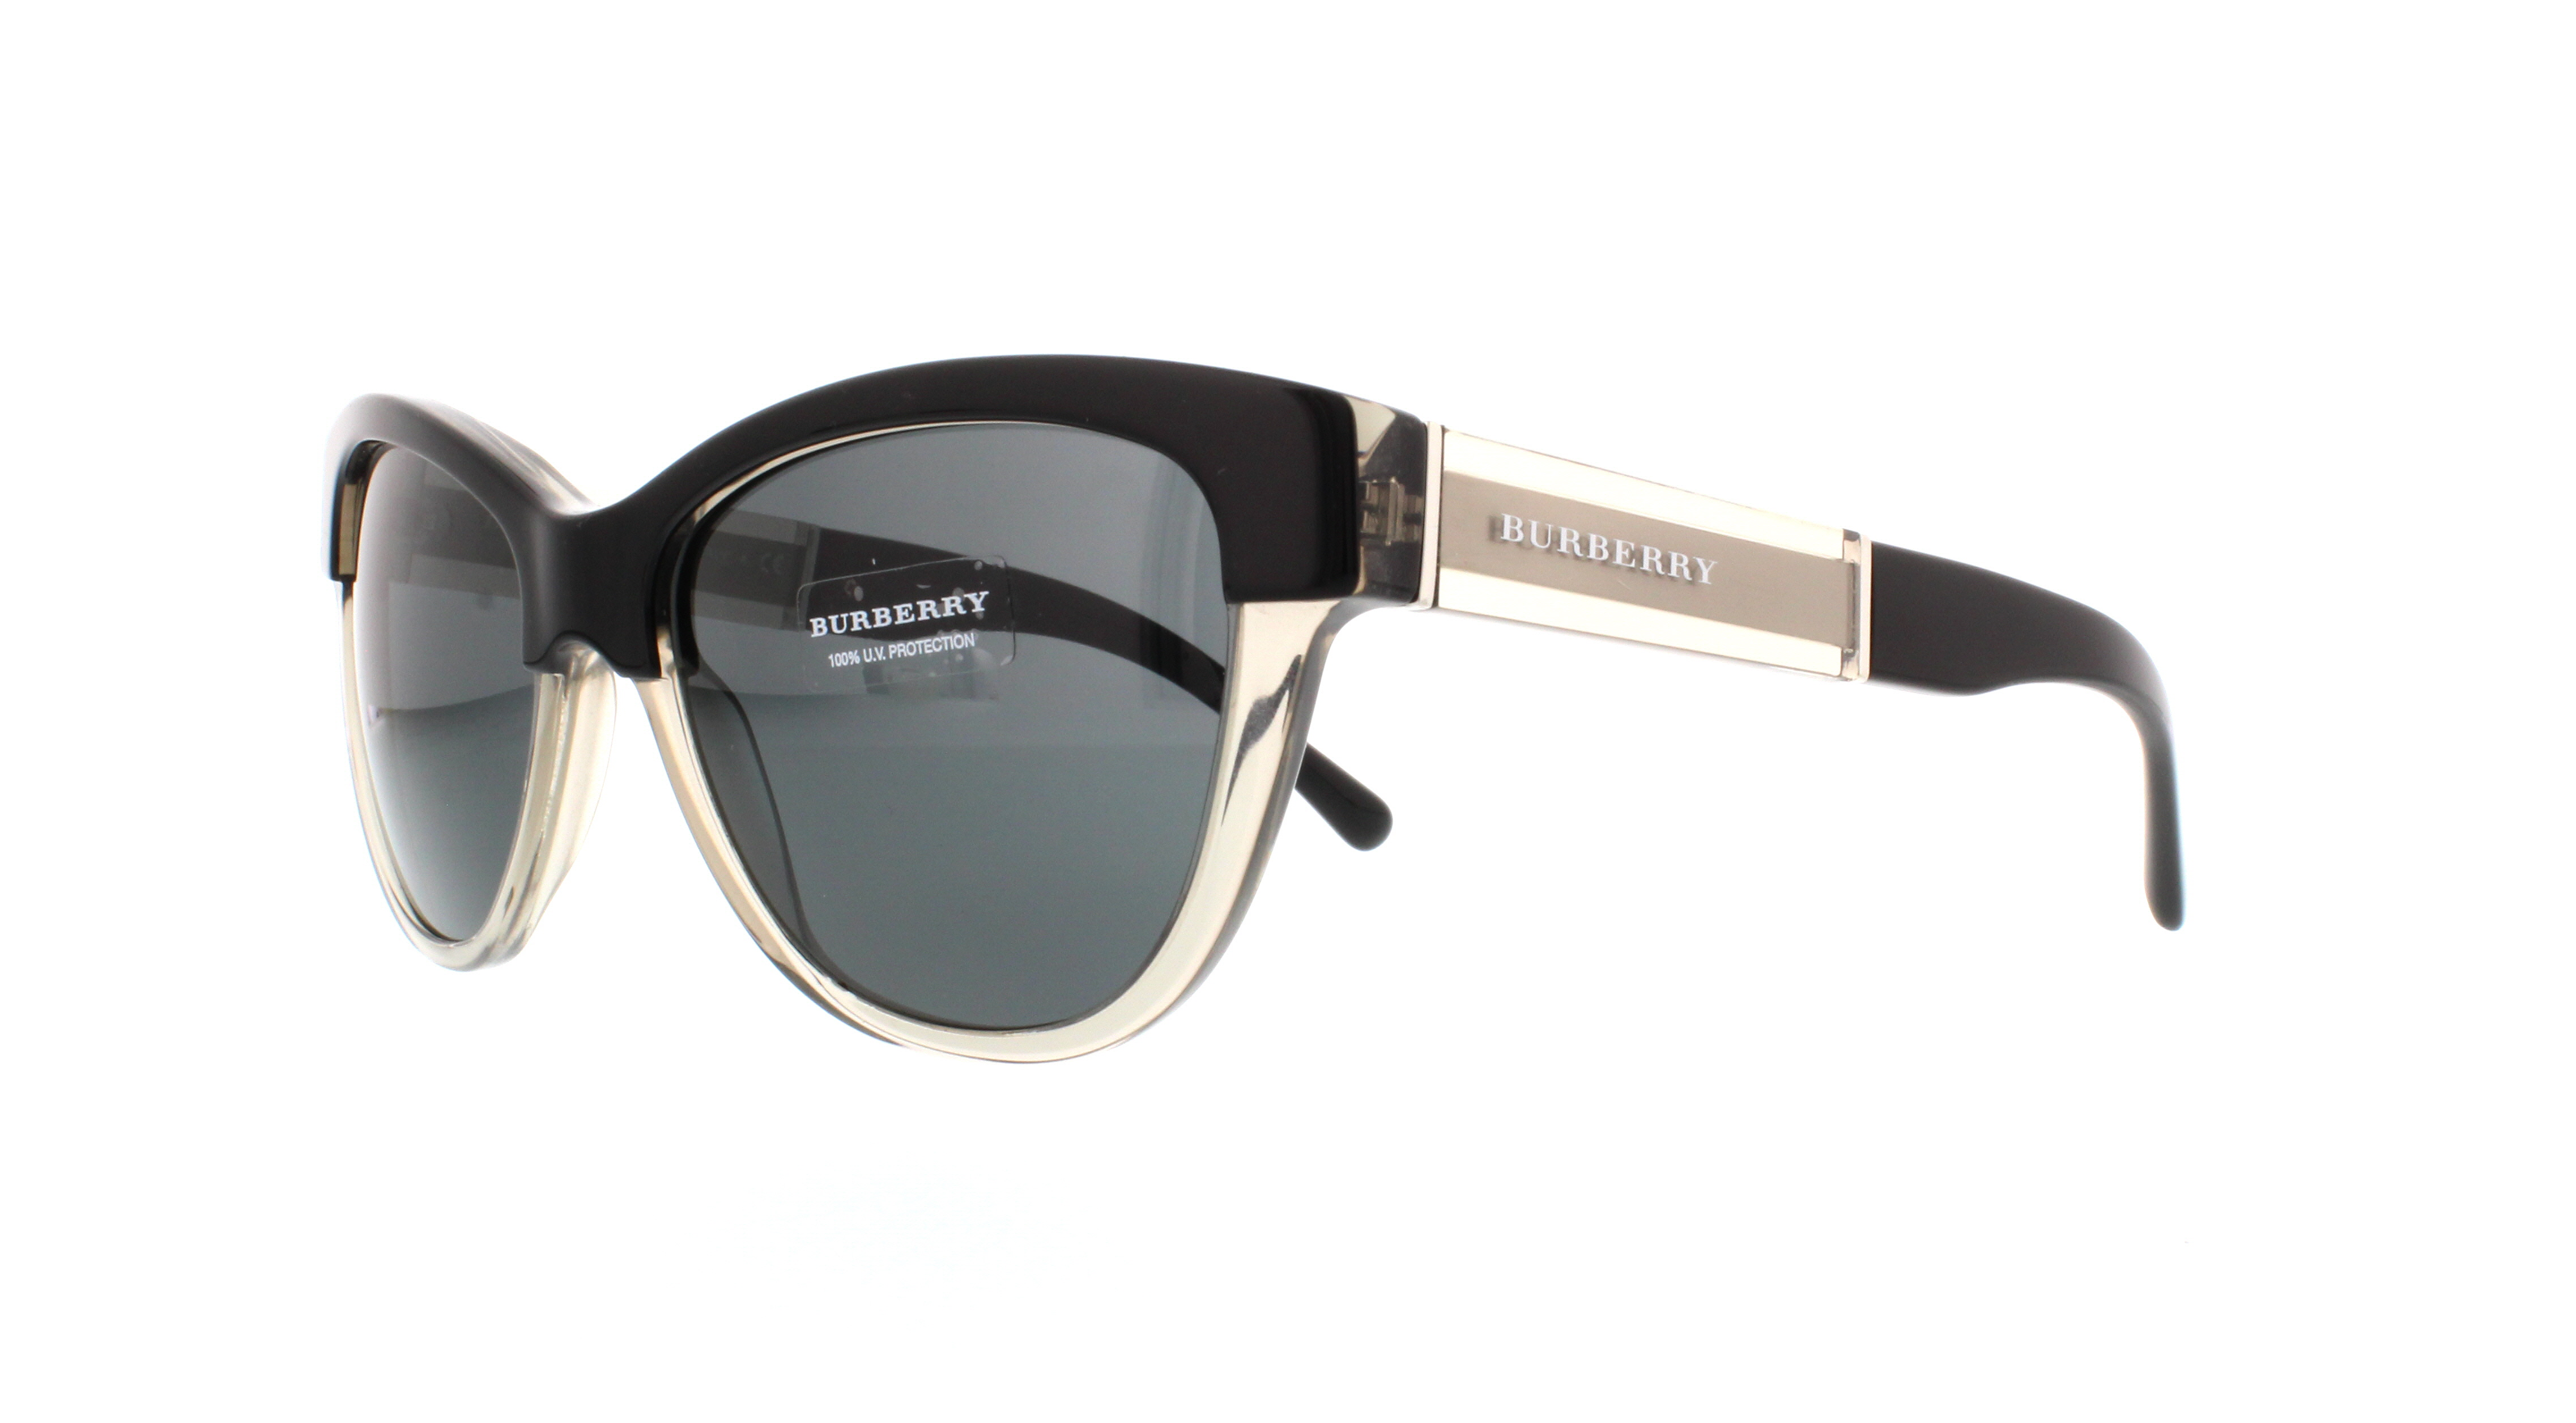 6803cf5d7a59 BURBERRY Sunglasses BE4206 355887 Top Black On Grey 55MM